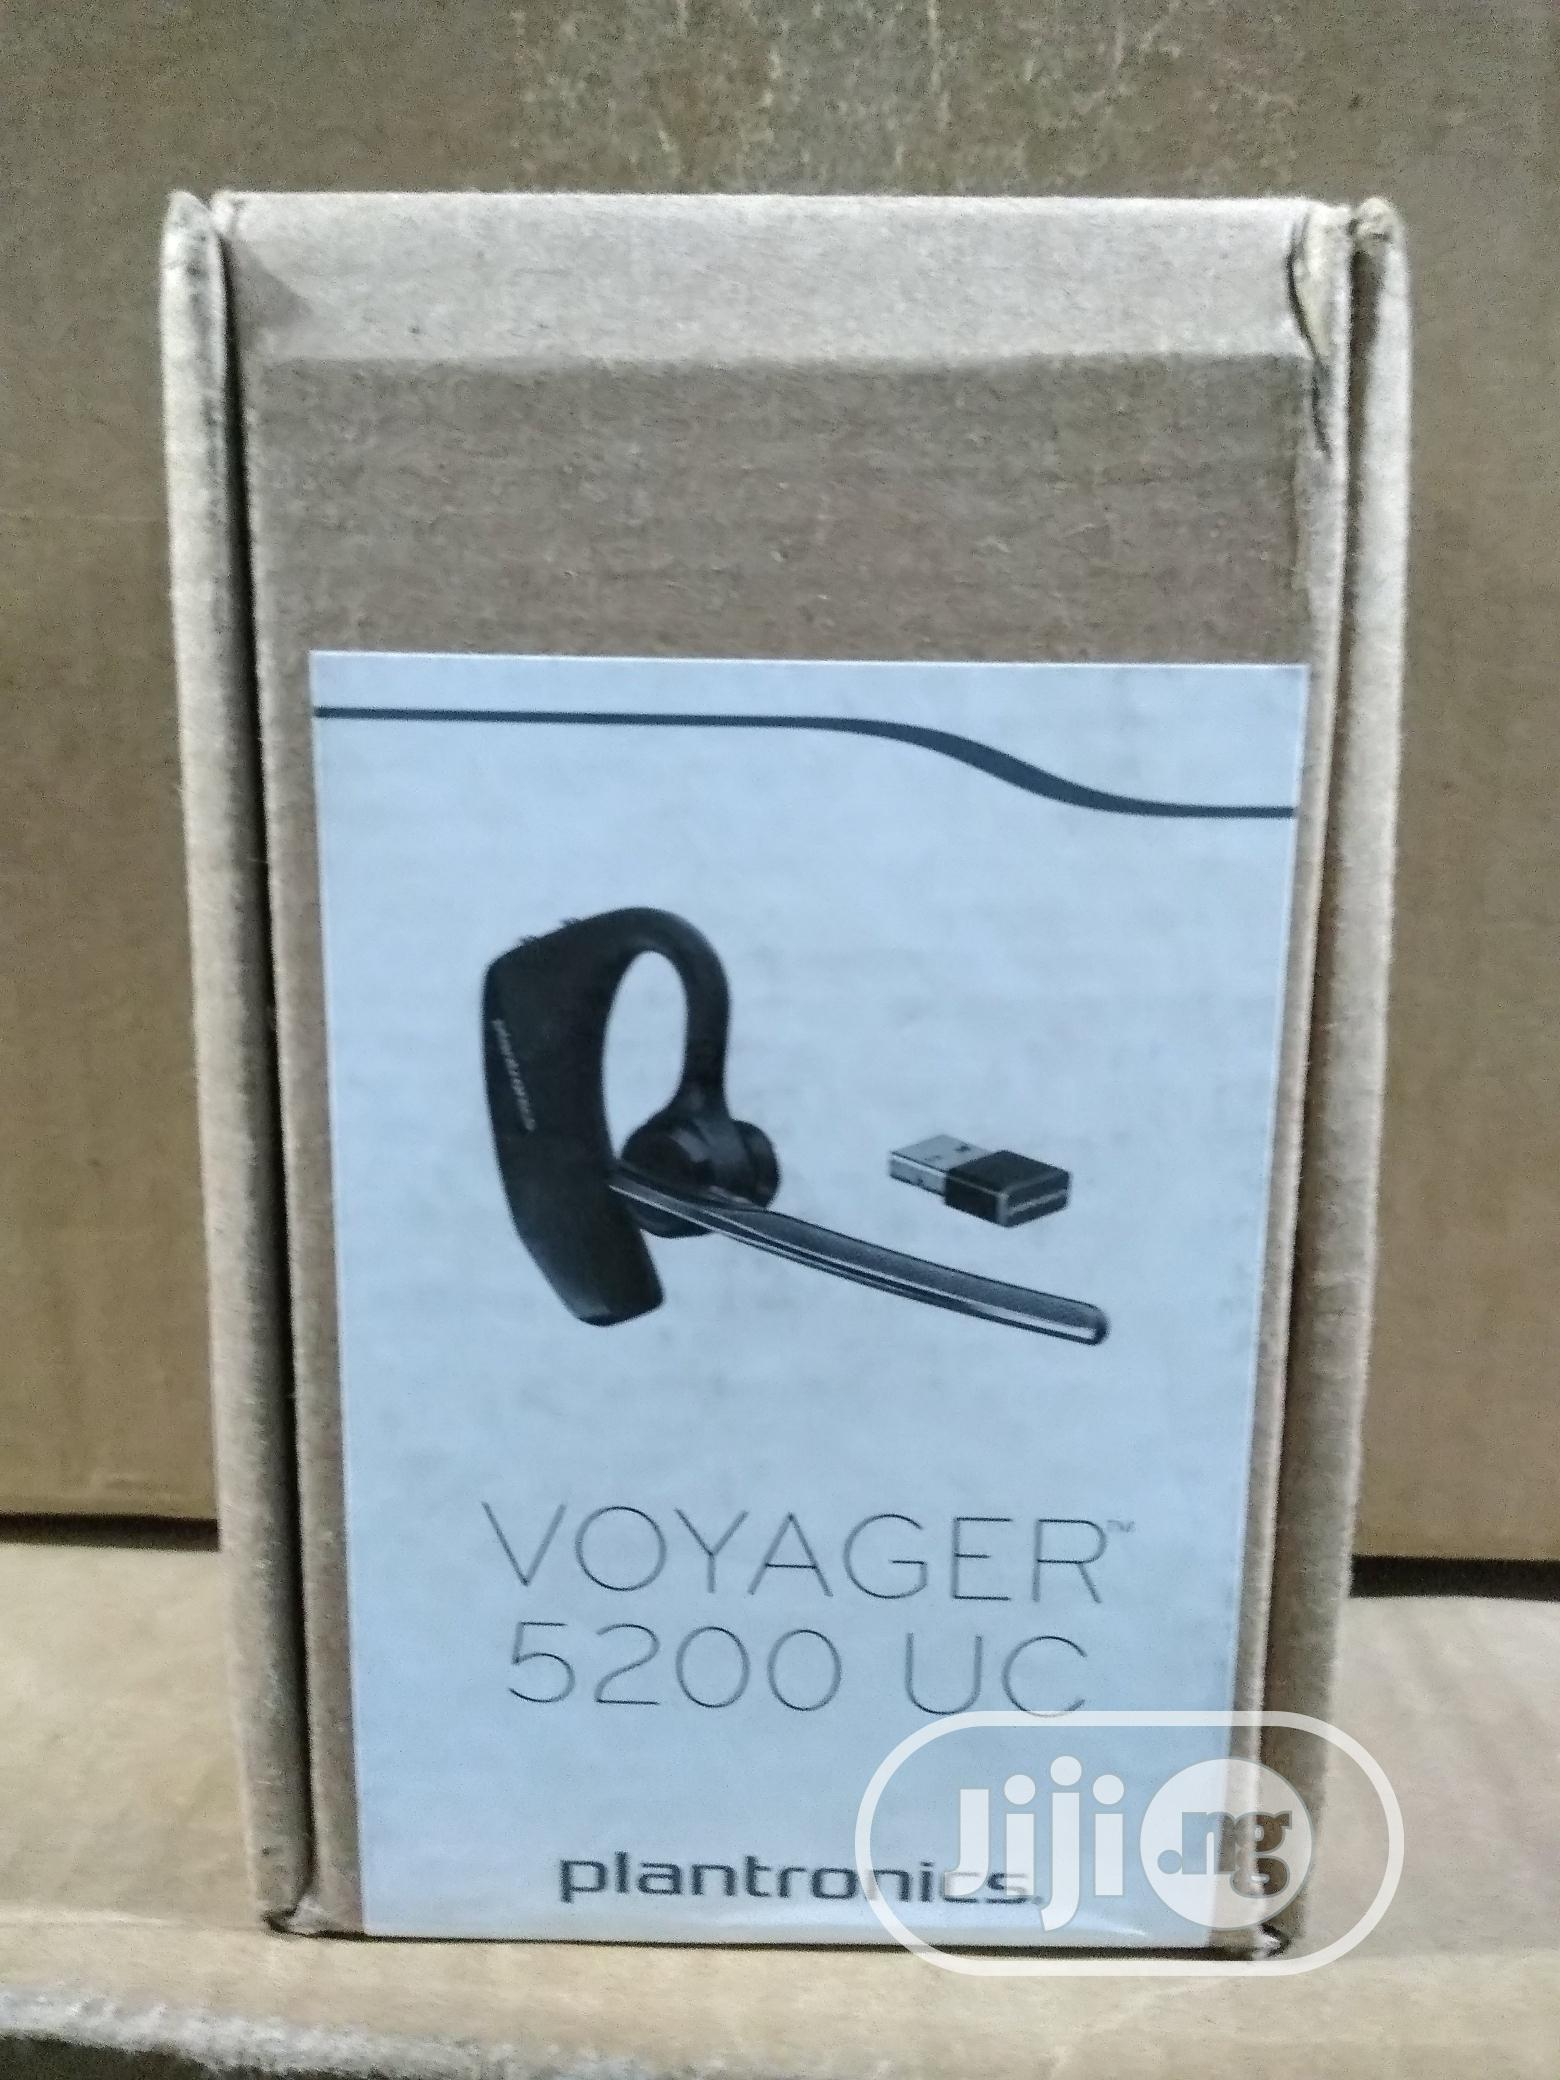 Plantronics Voyager 5200 Uc   Accessories for Mobile Phones & Tablets for sale in Ikeja, Lagos State, Nigeria